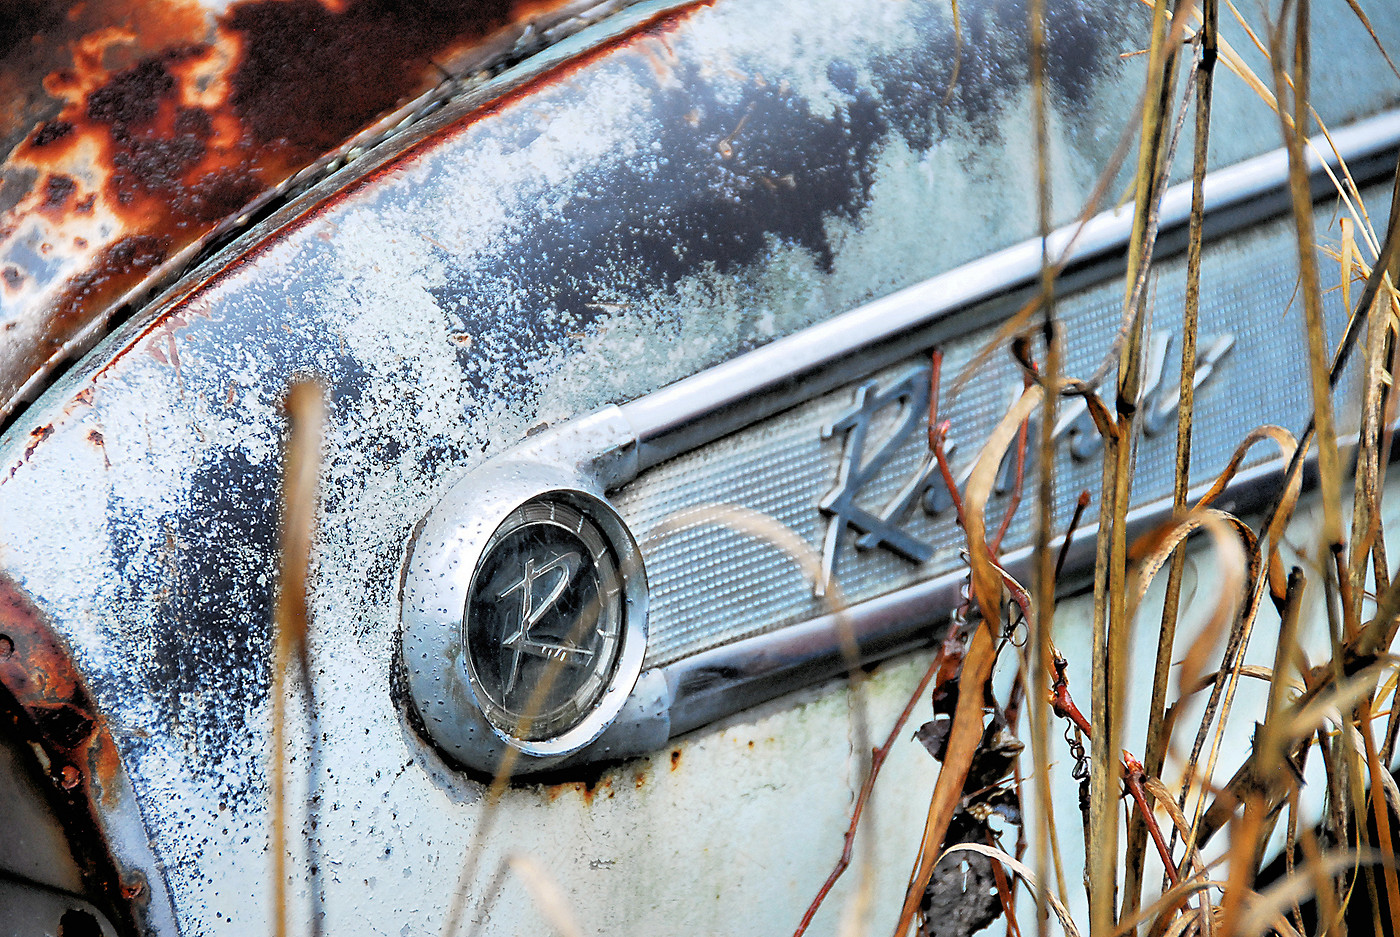 Collier Motors 1957 AMC Rebel detail